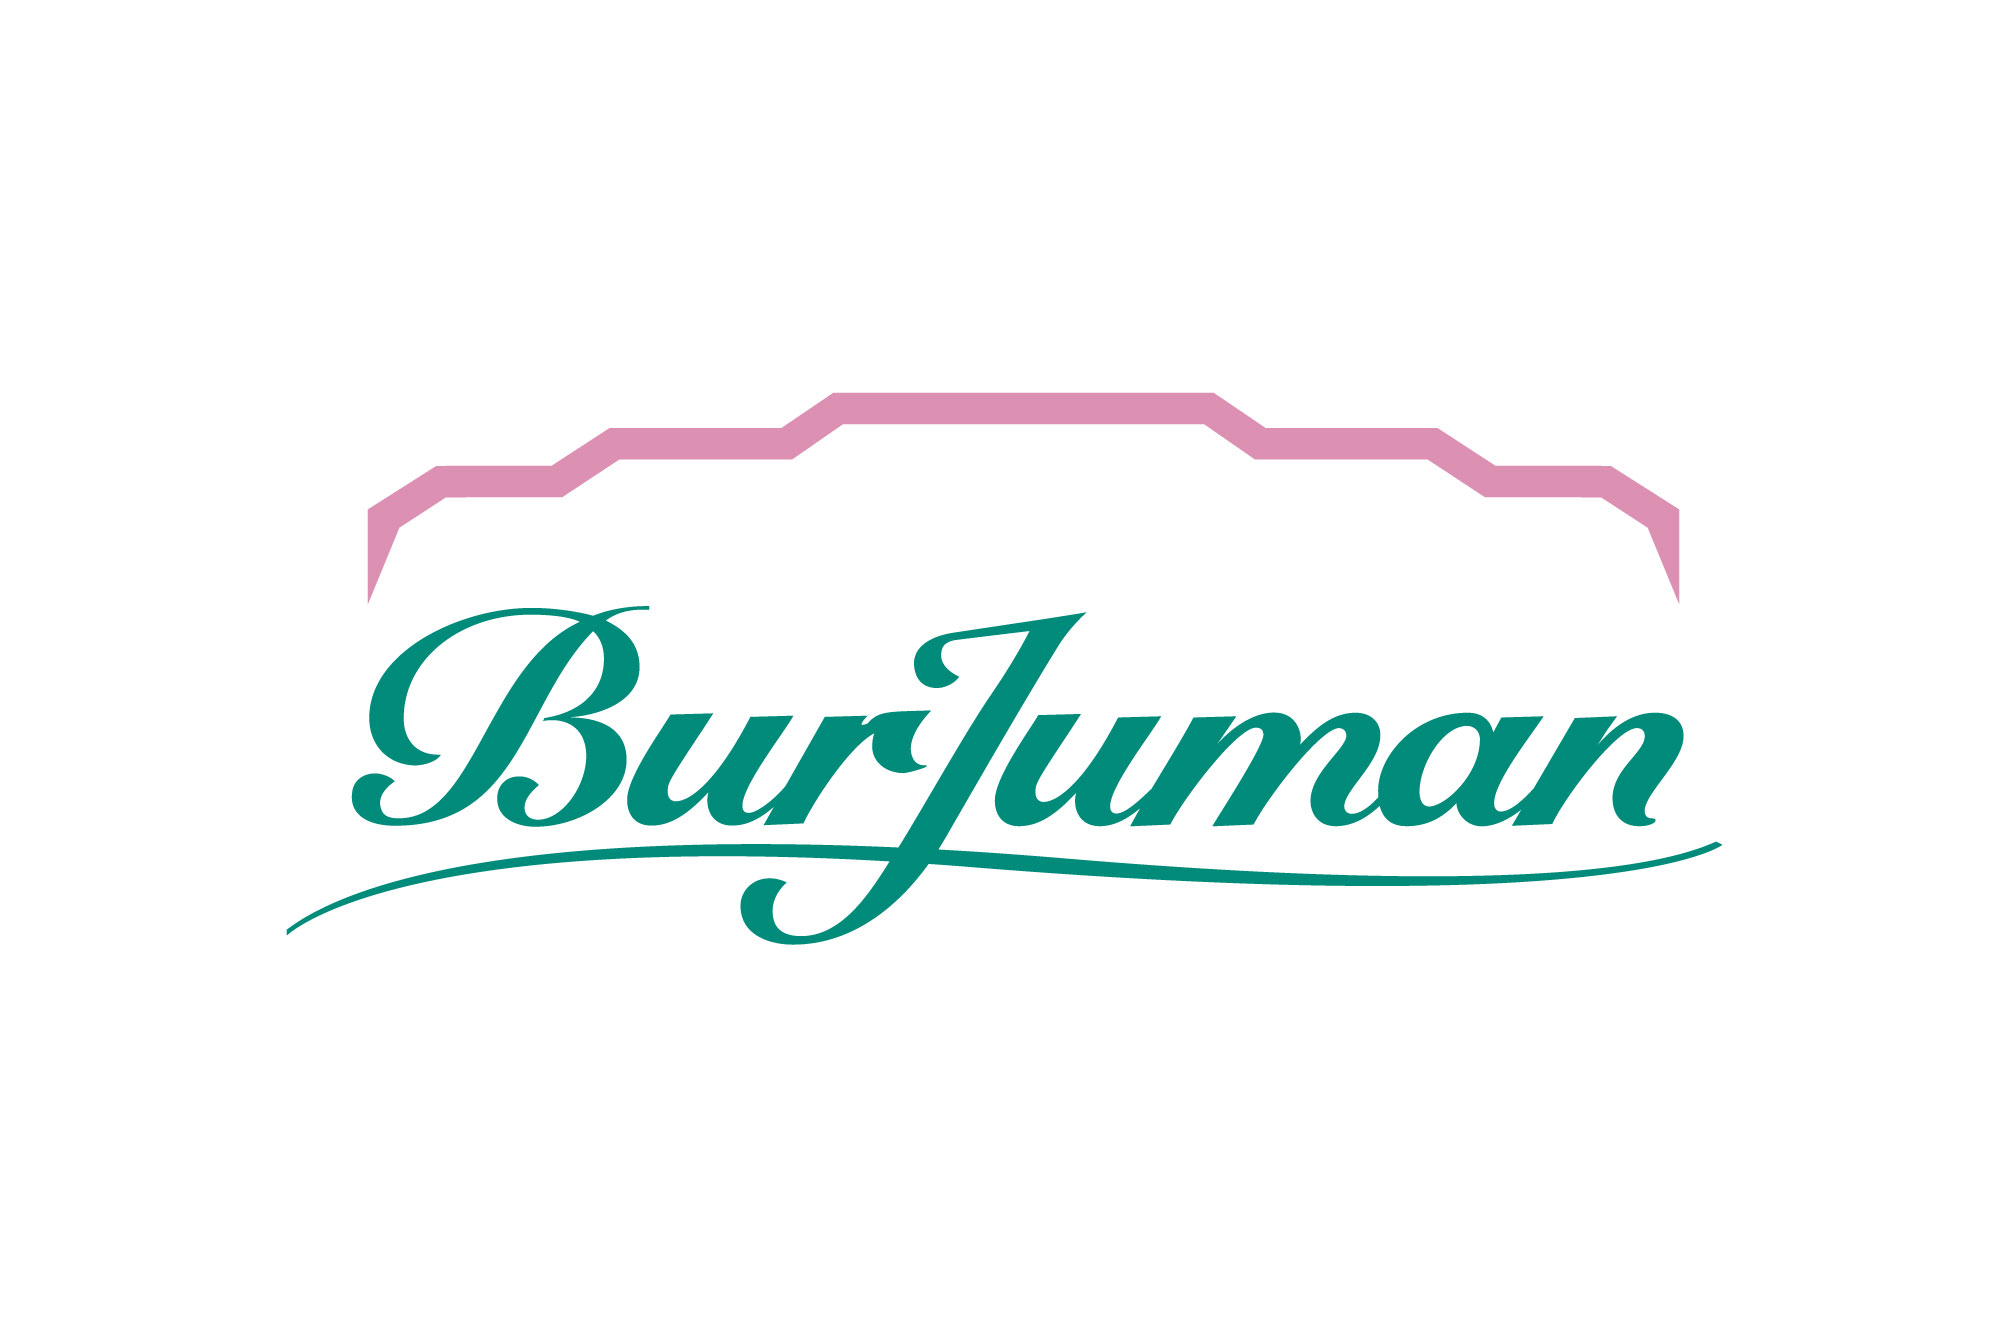 The old BurJuman logo.